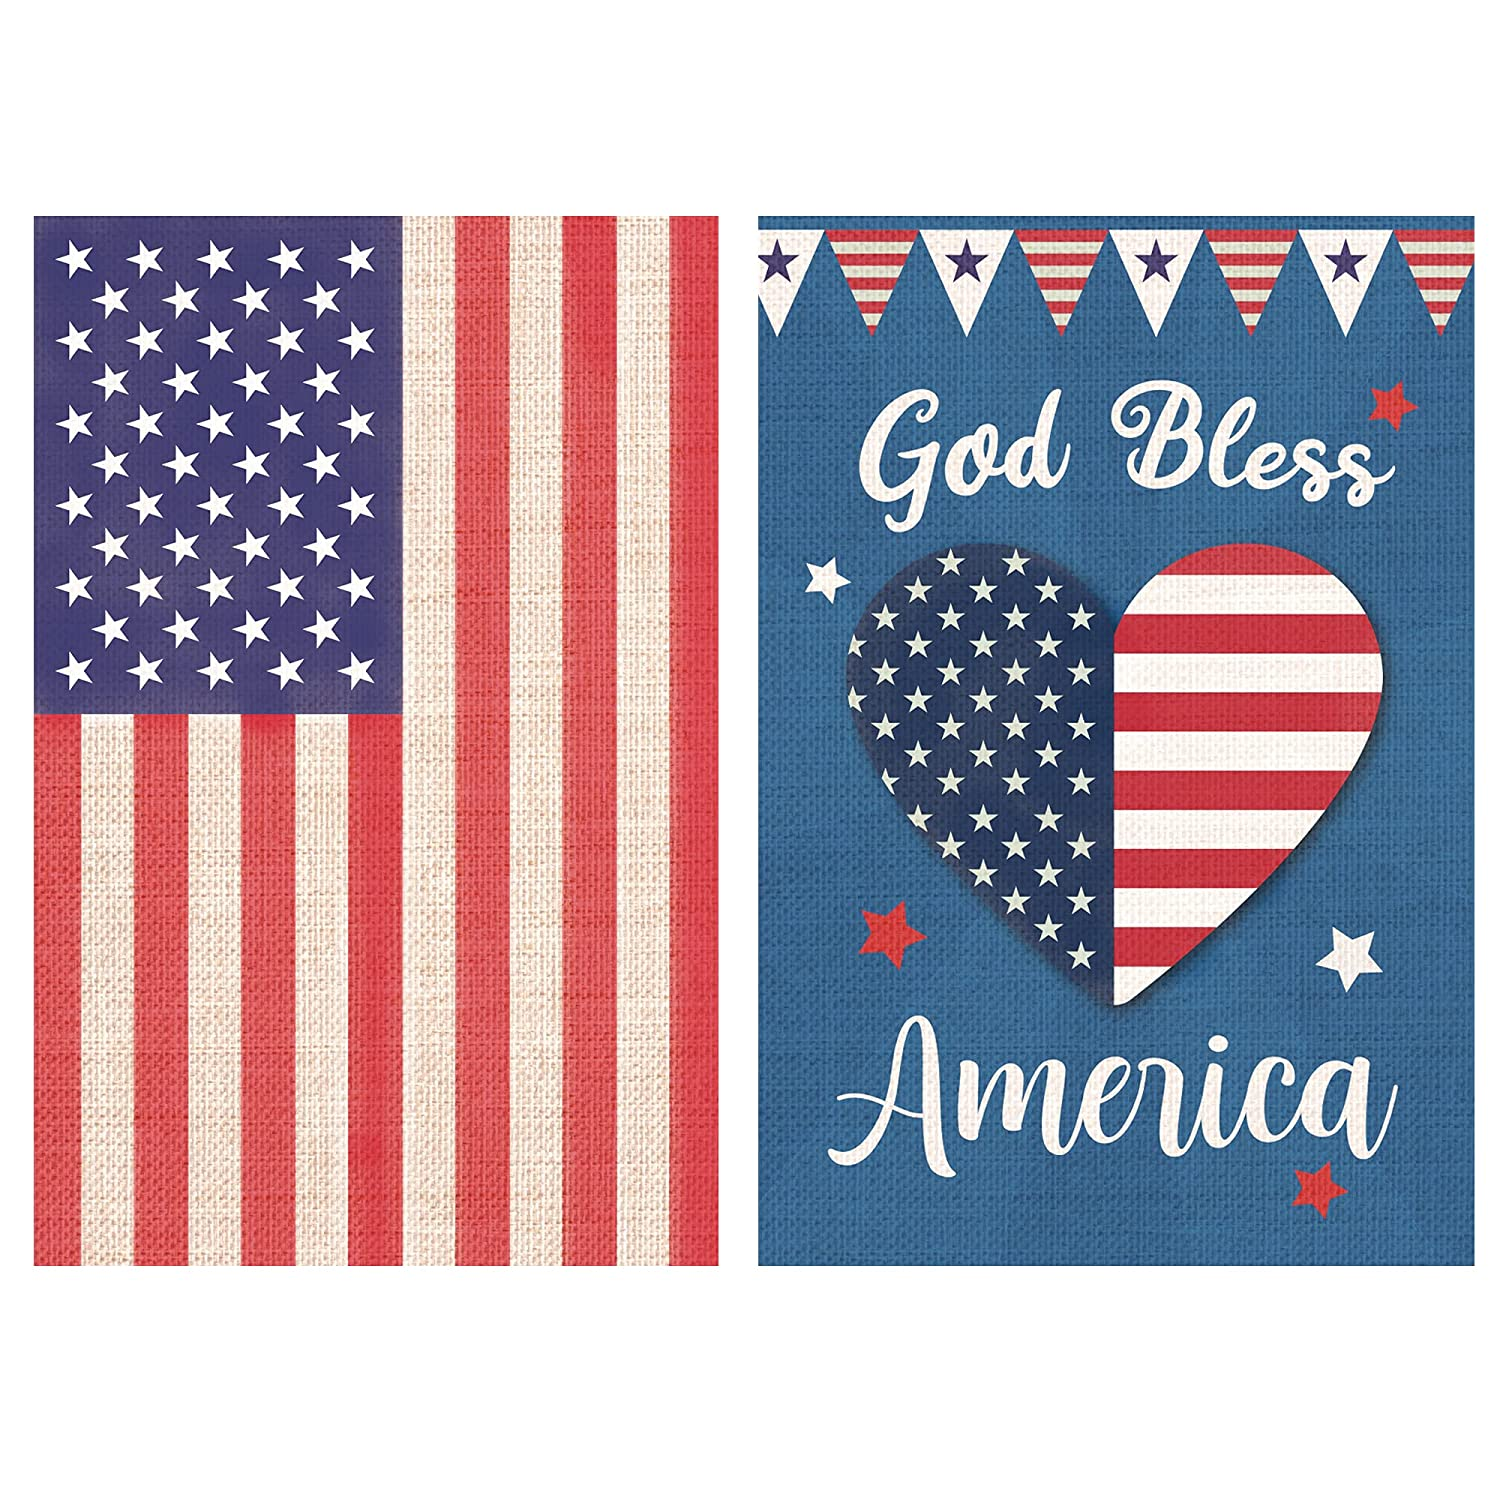 Burlap Patriotic God Bless America 4th of July Star Heart Garden Flag, Independence Day Memorial Day American Garden Flag Set of 2 Outdoor House Yard Decorative Mini Flag 12.5 x 18